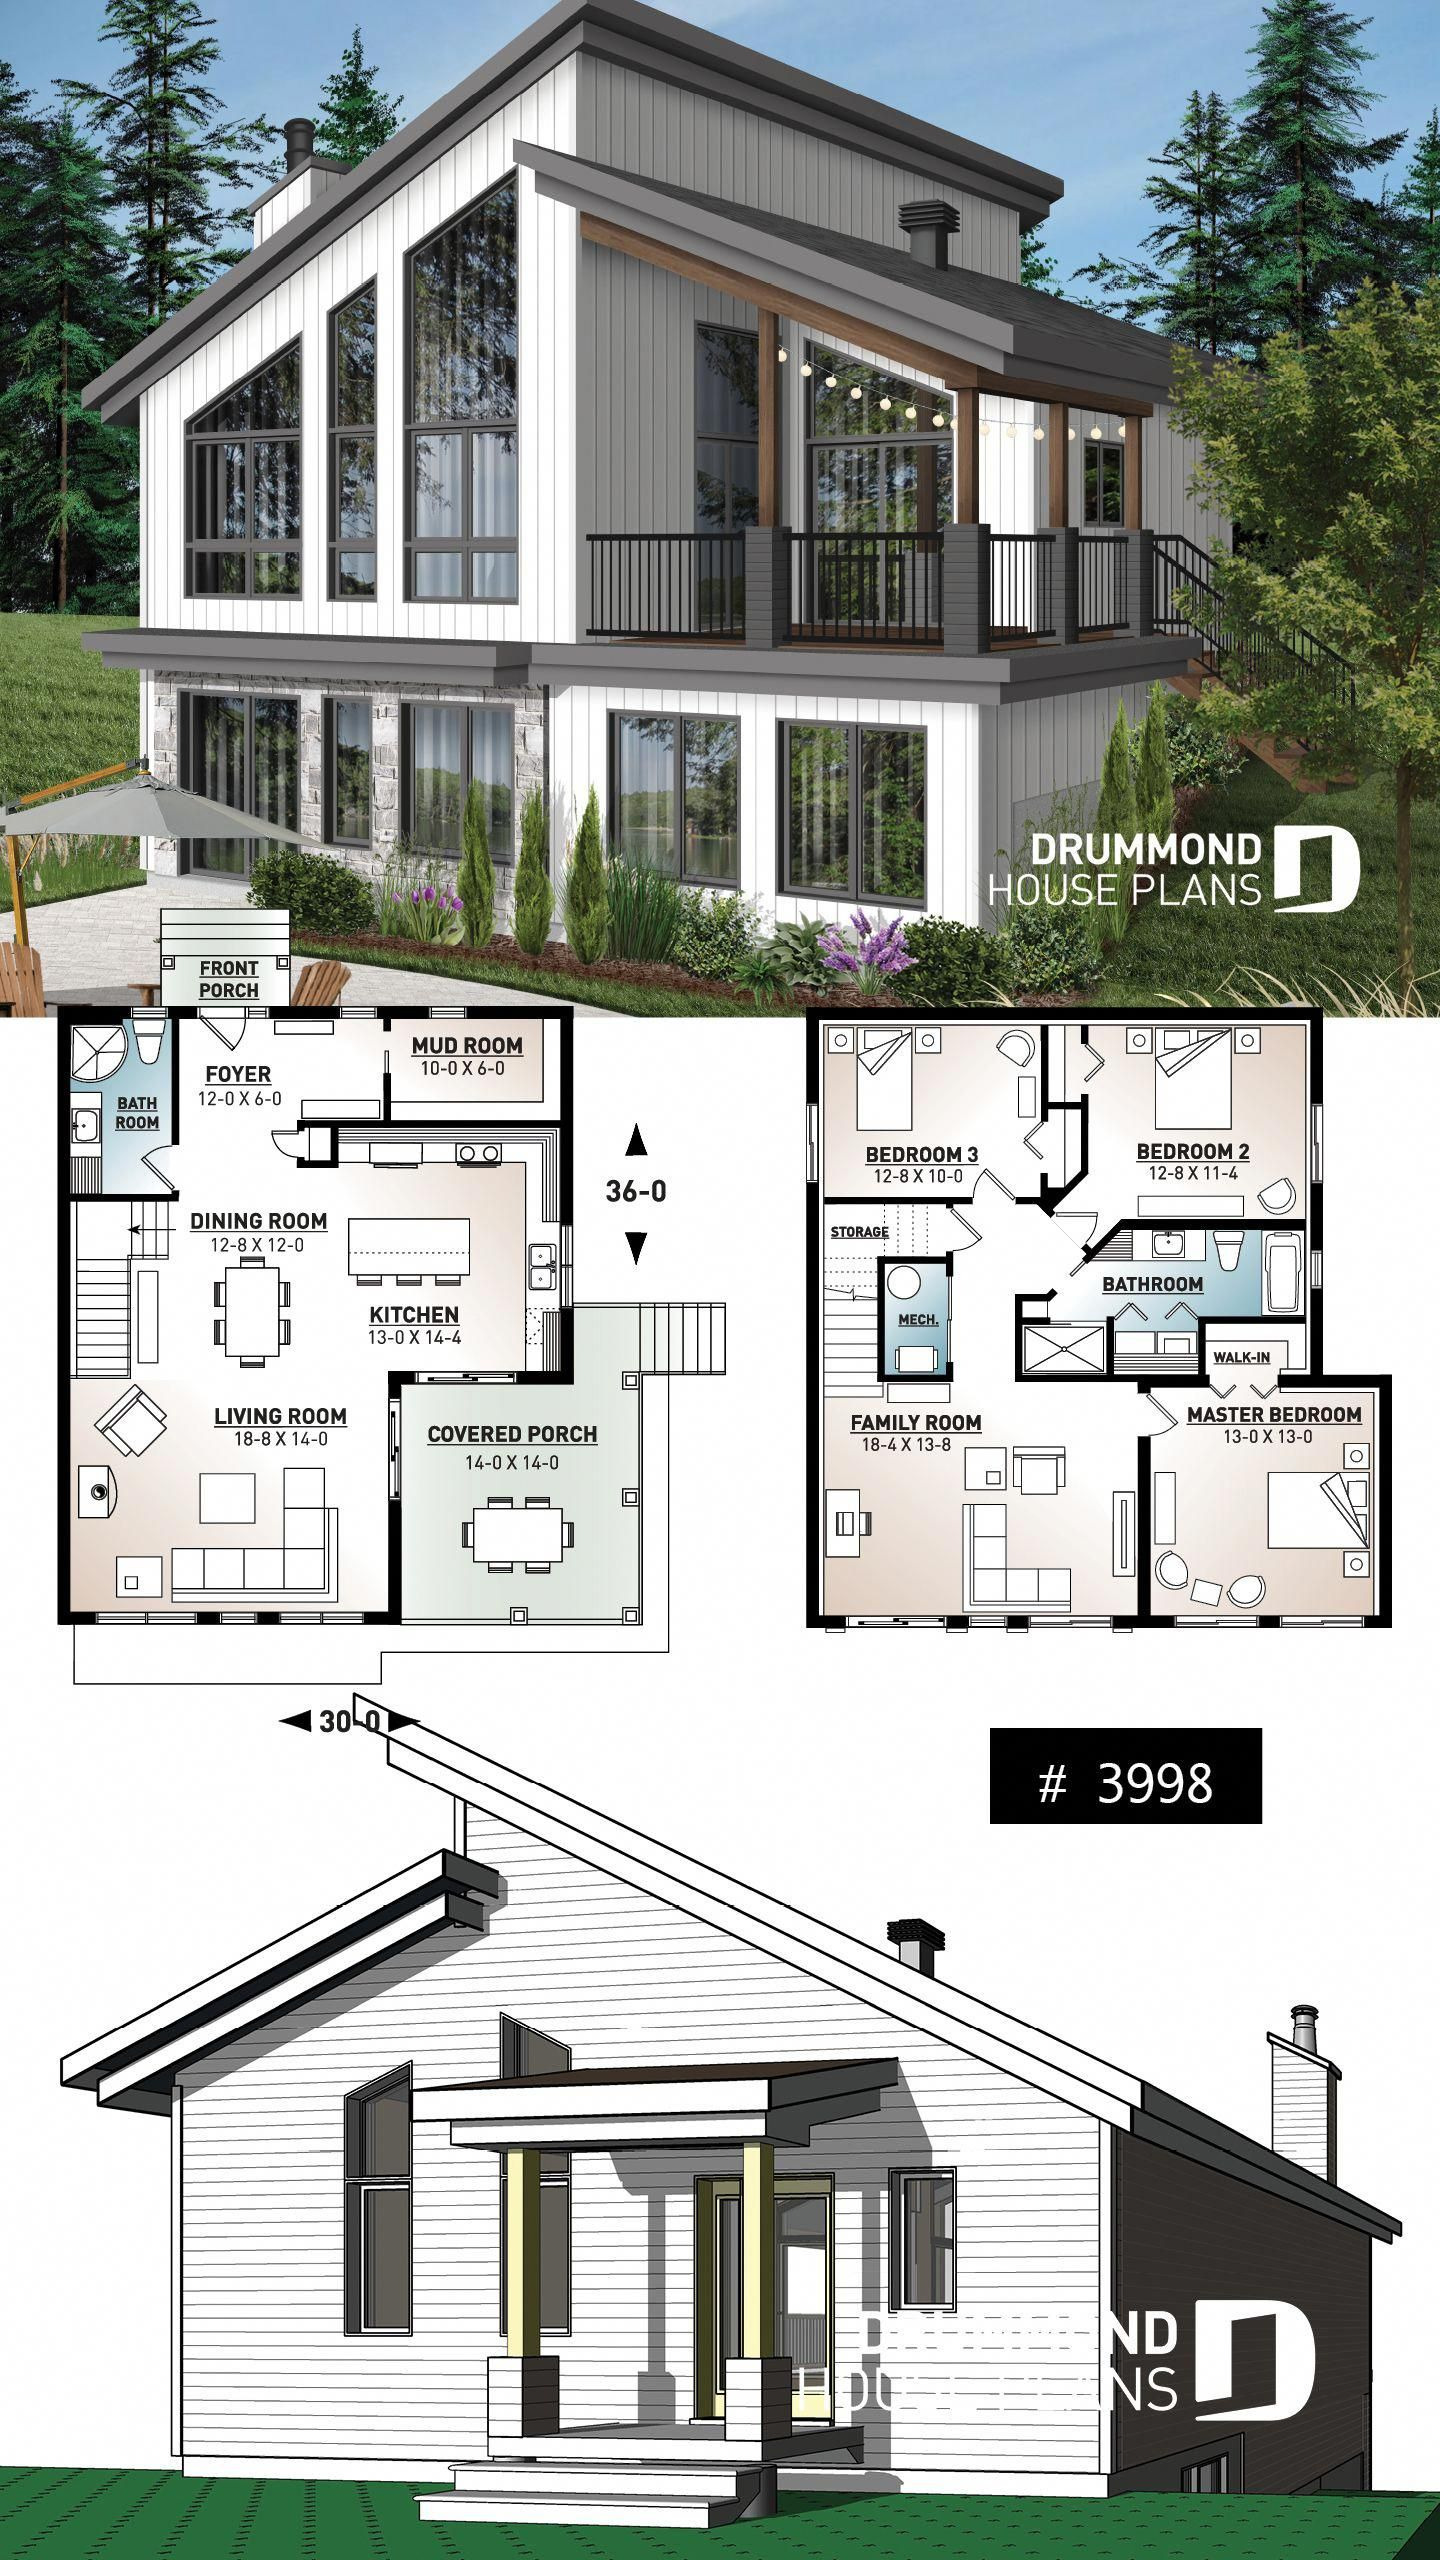 Ski Or Mountain Cottage Plan With Walkout Basement Large Covered Deck 3 Beds 2 Bathrooms Open Concept B Sims House Plans Cottage Plan Basement House Plans